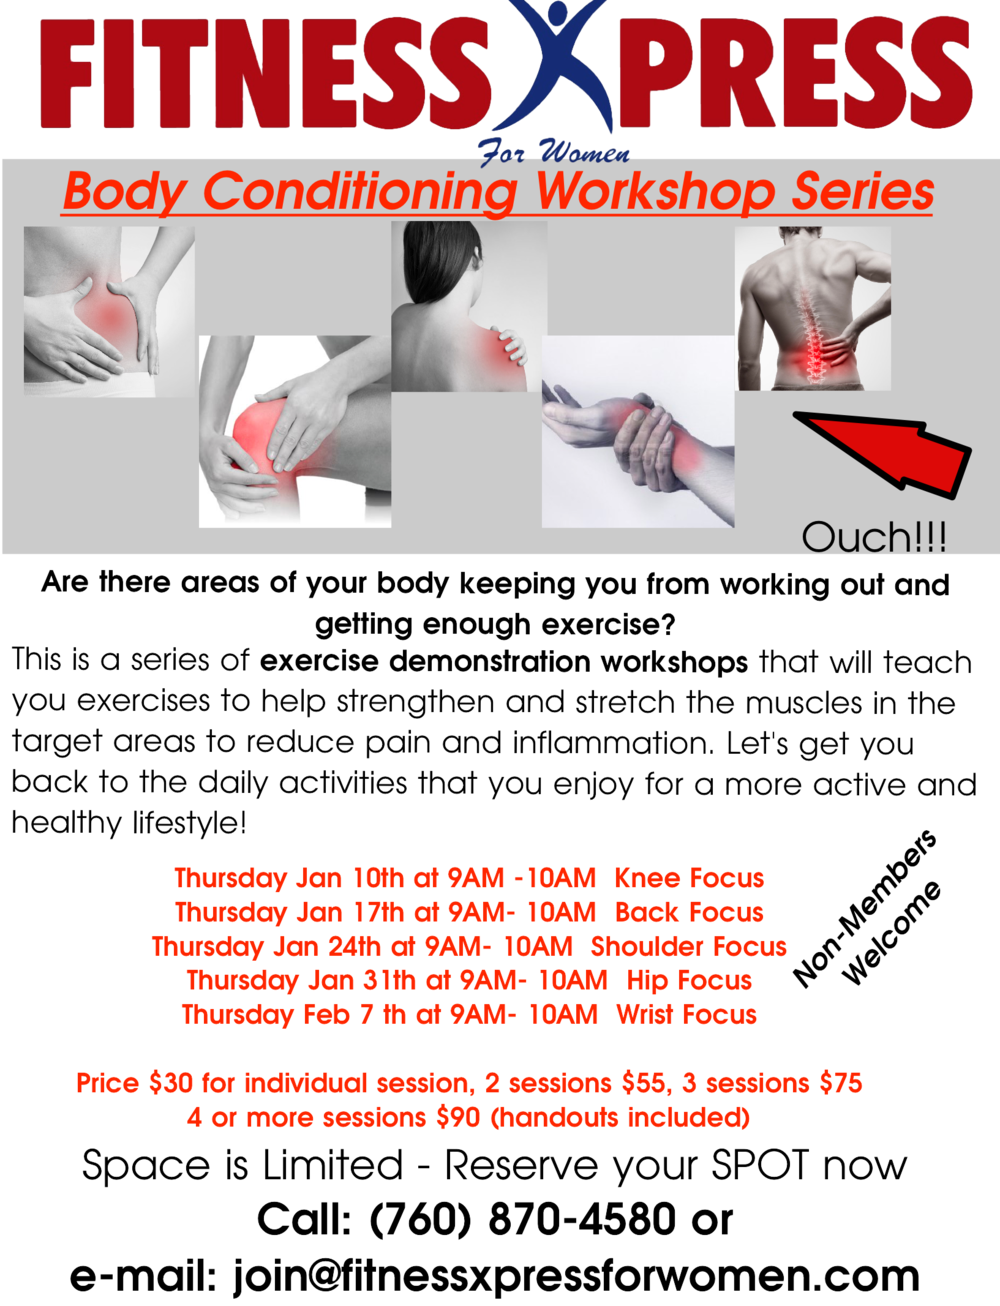 Body Conditioning Workshop Series.png